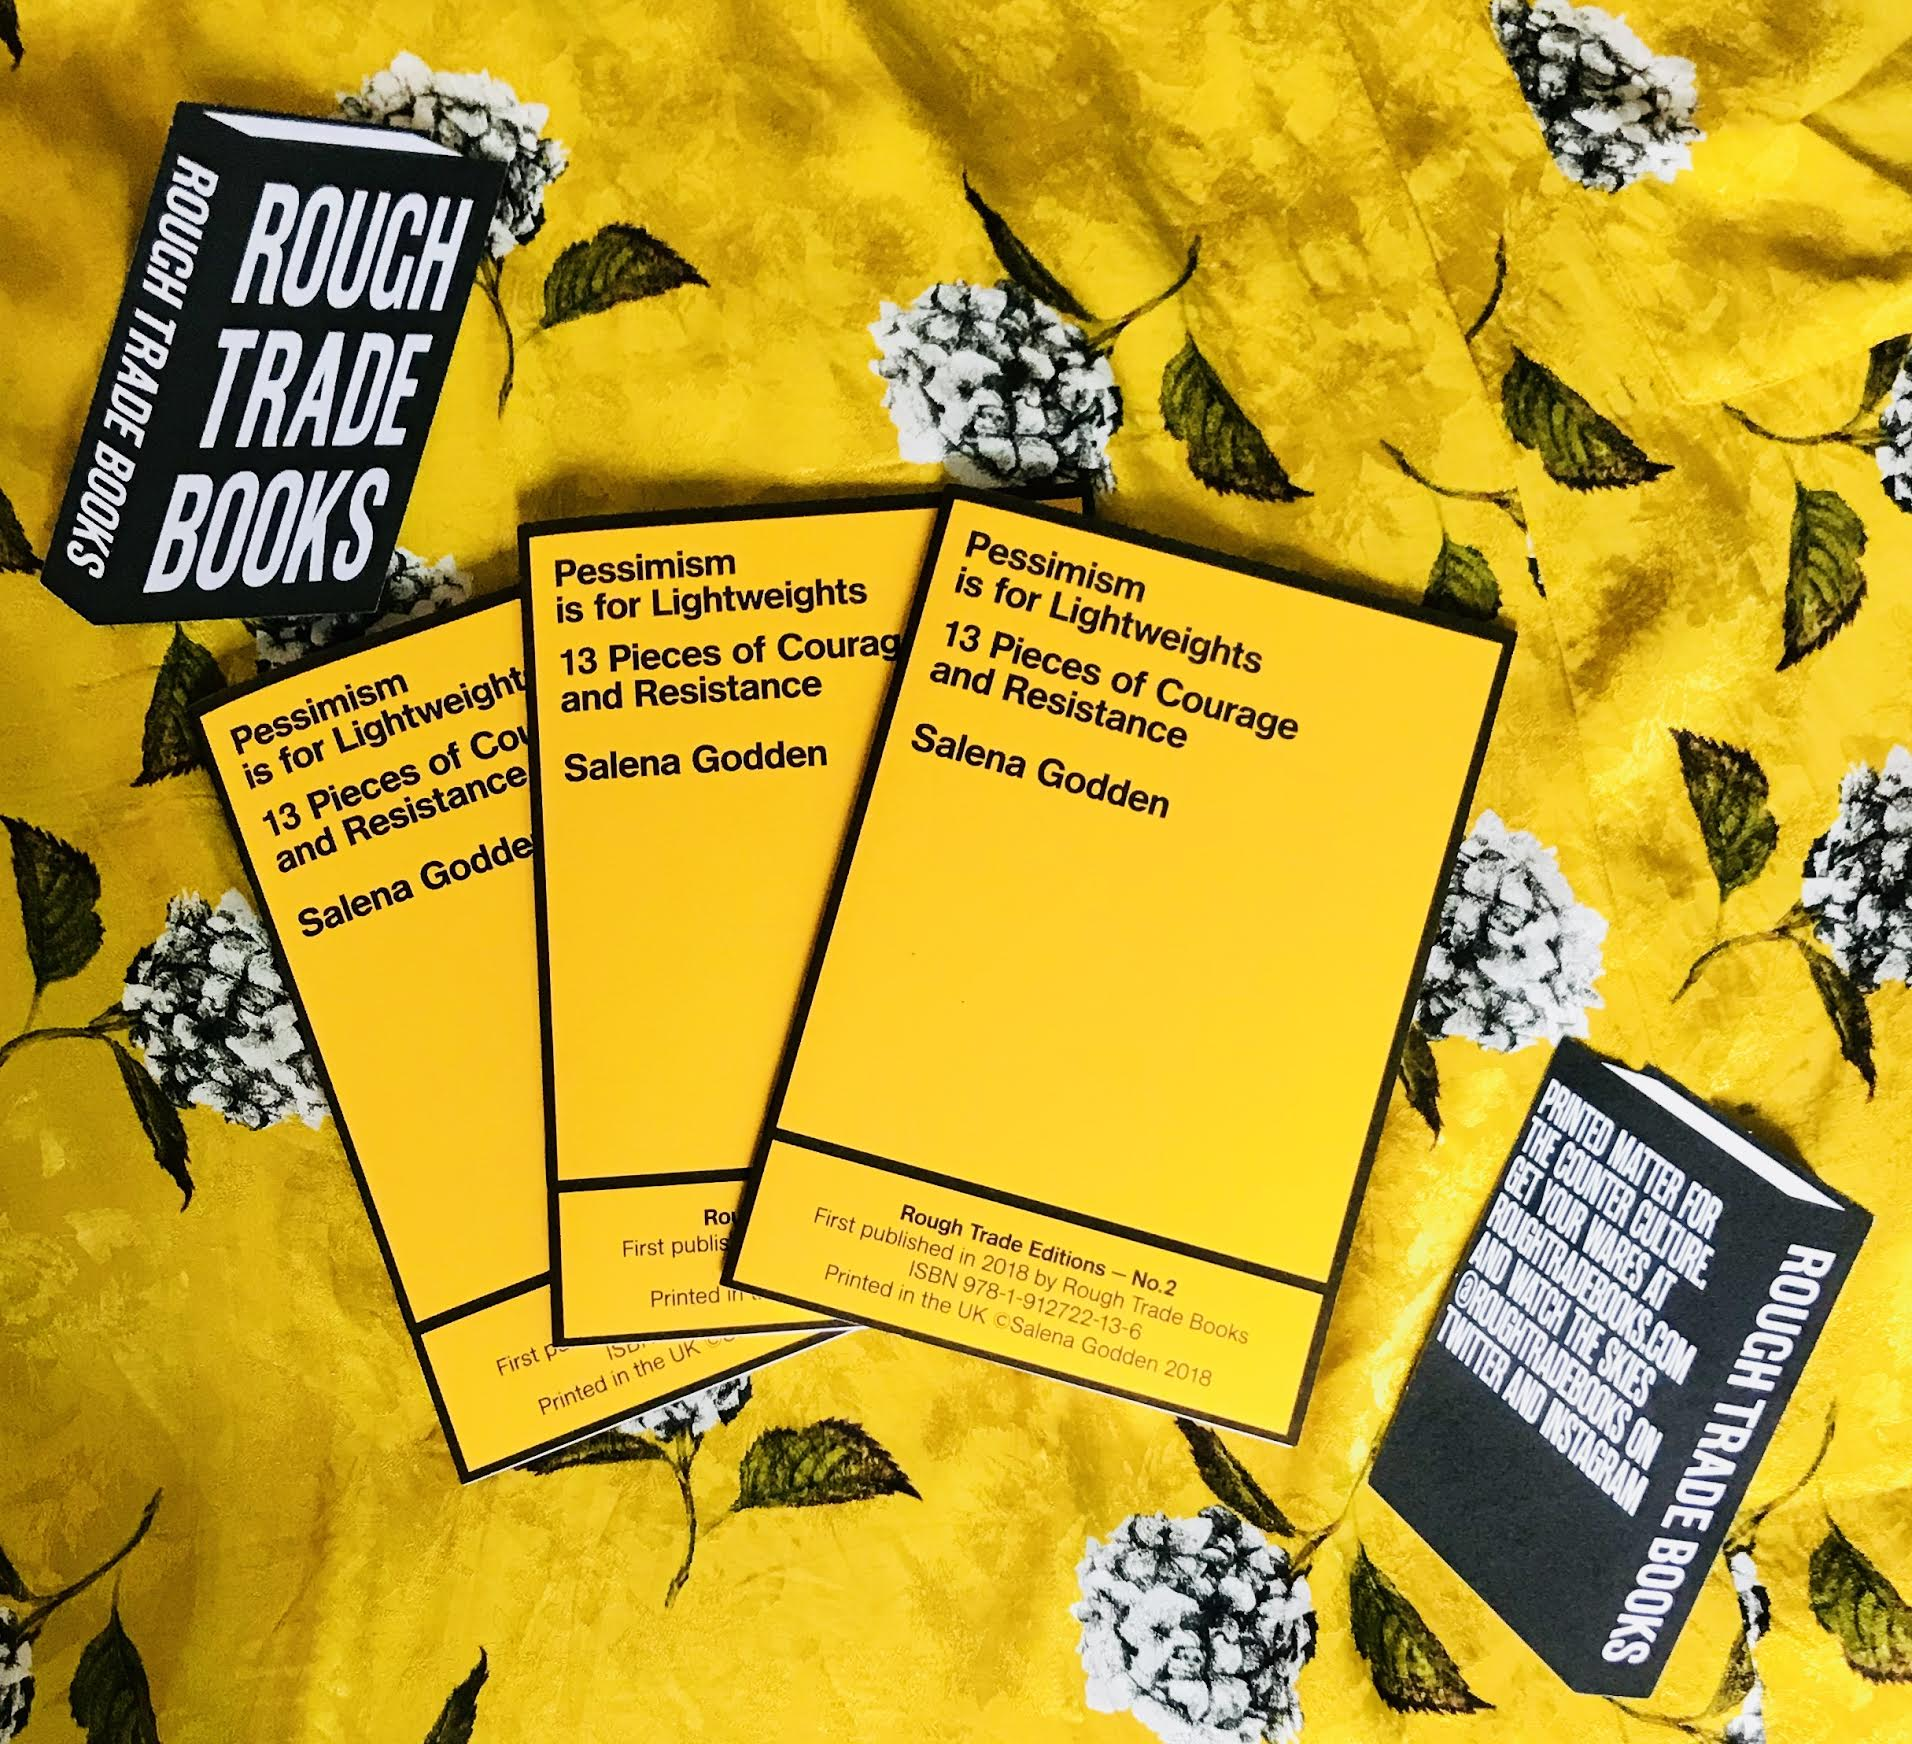 Pessimism is for Lightweights, Rough Trade Books